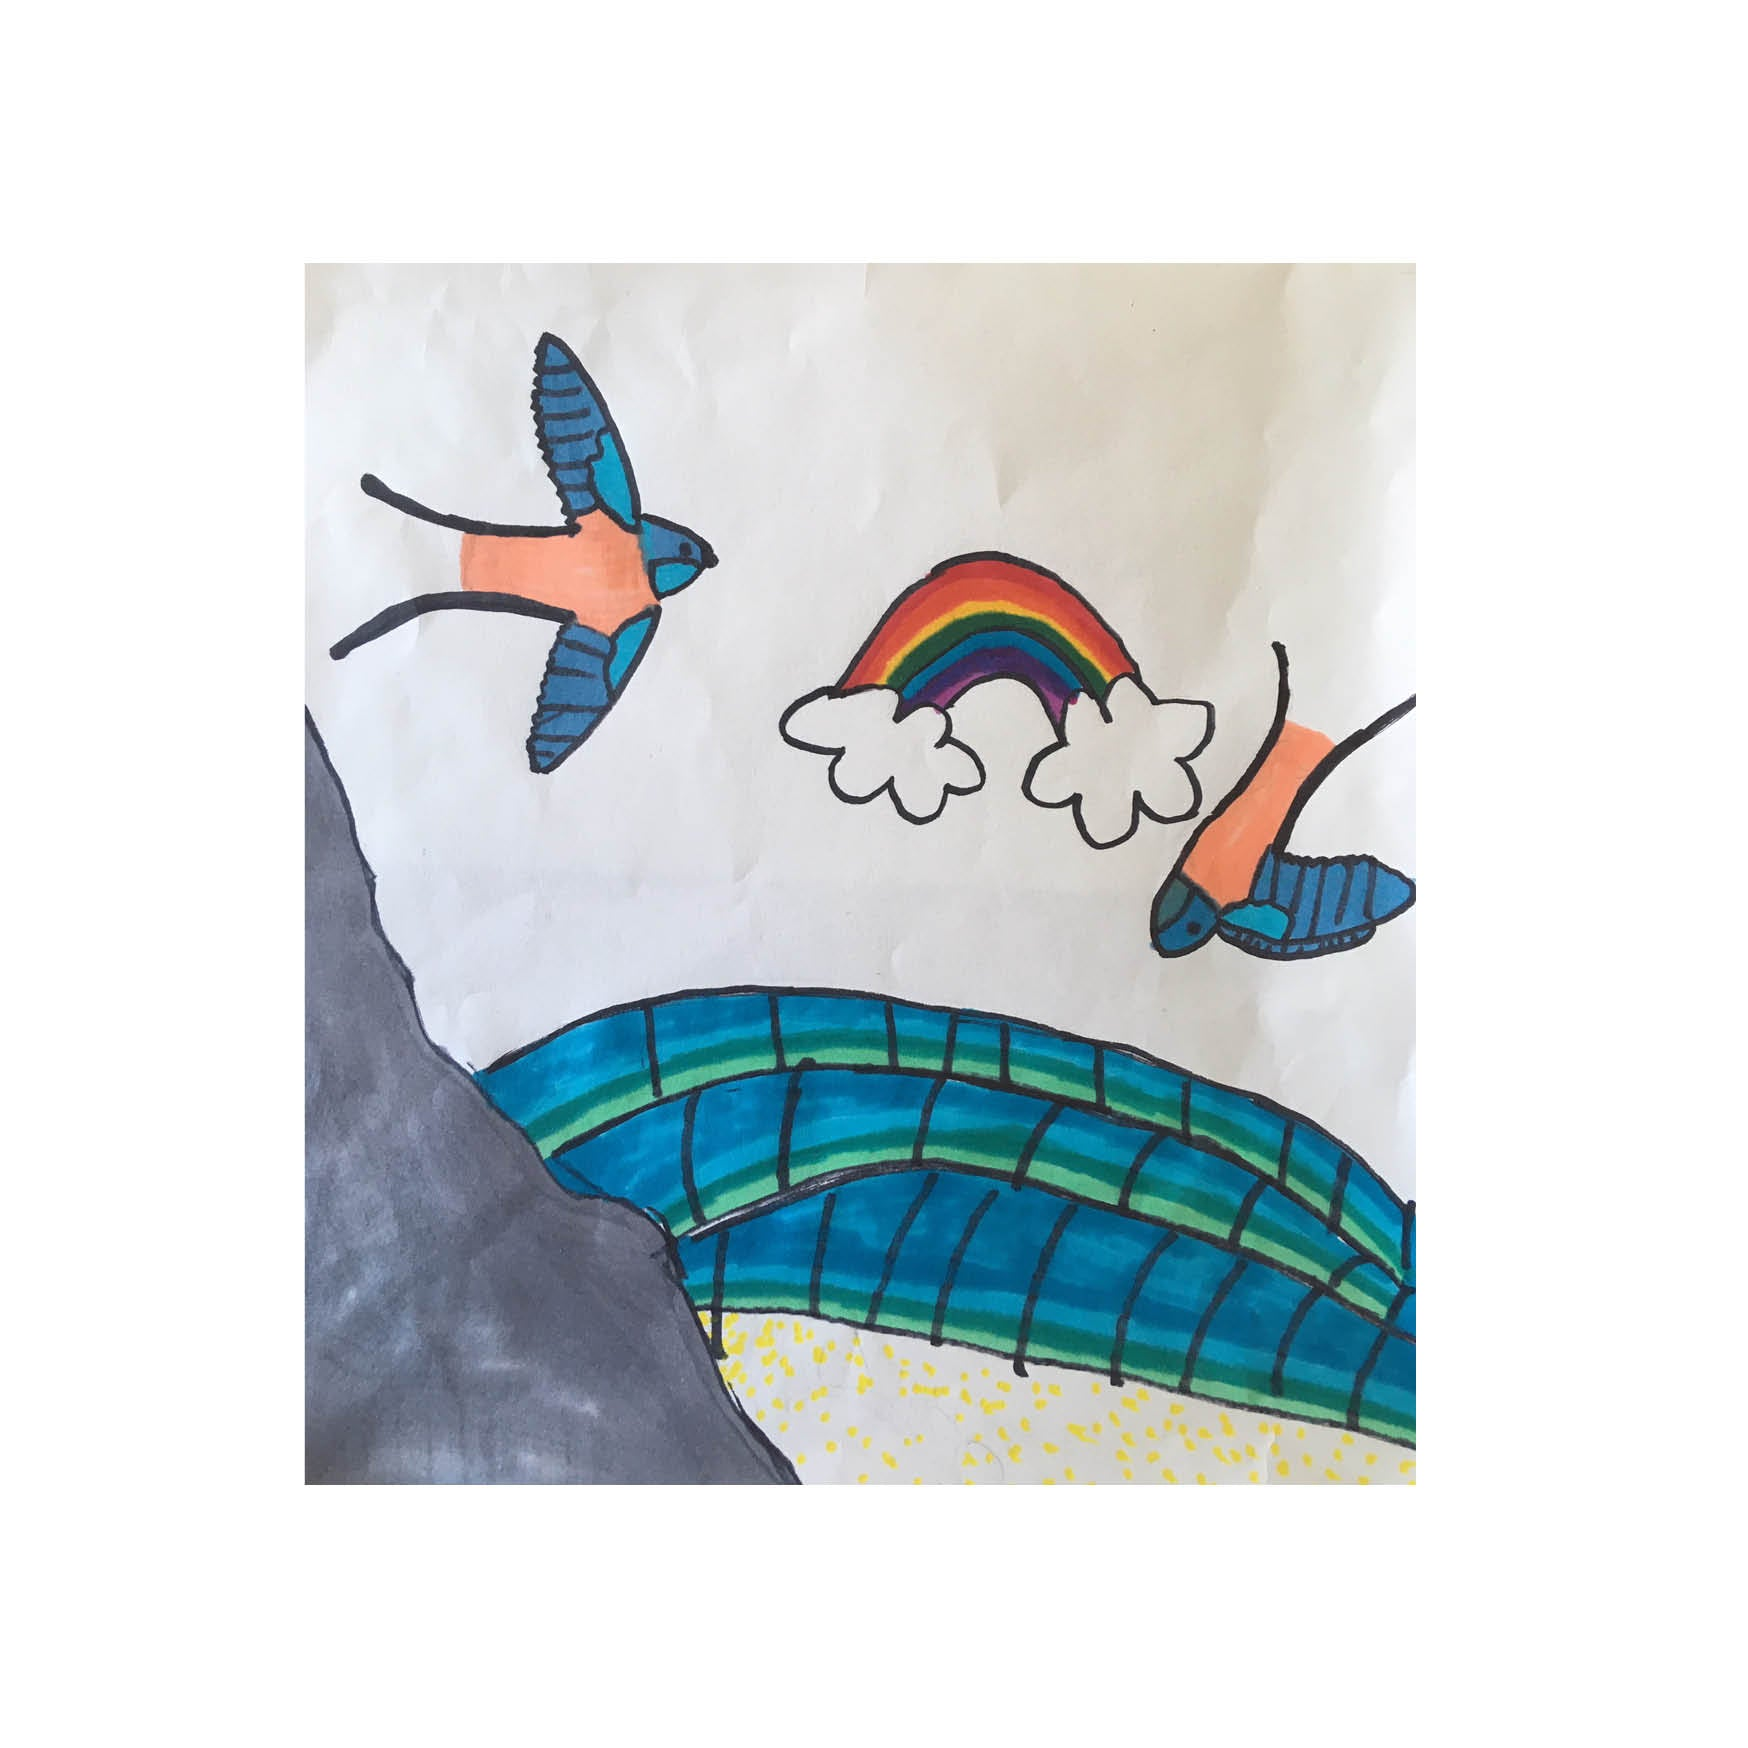 Molly Kerr aged 9  - #FinisterreForNHS t-shirt design competition [Kids category]